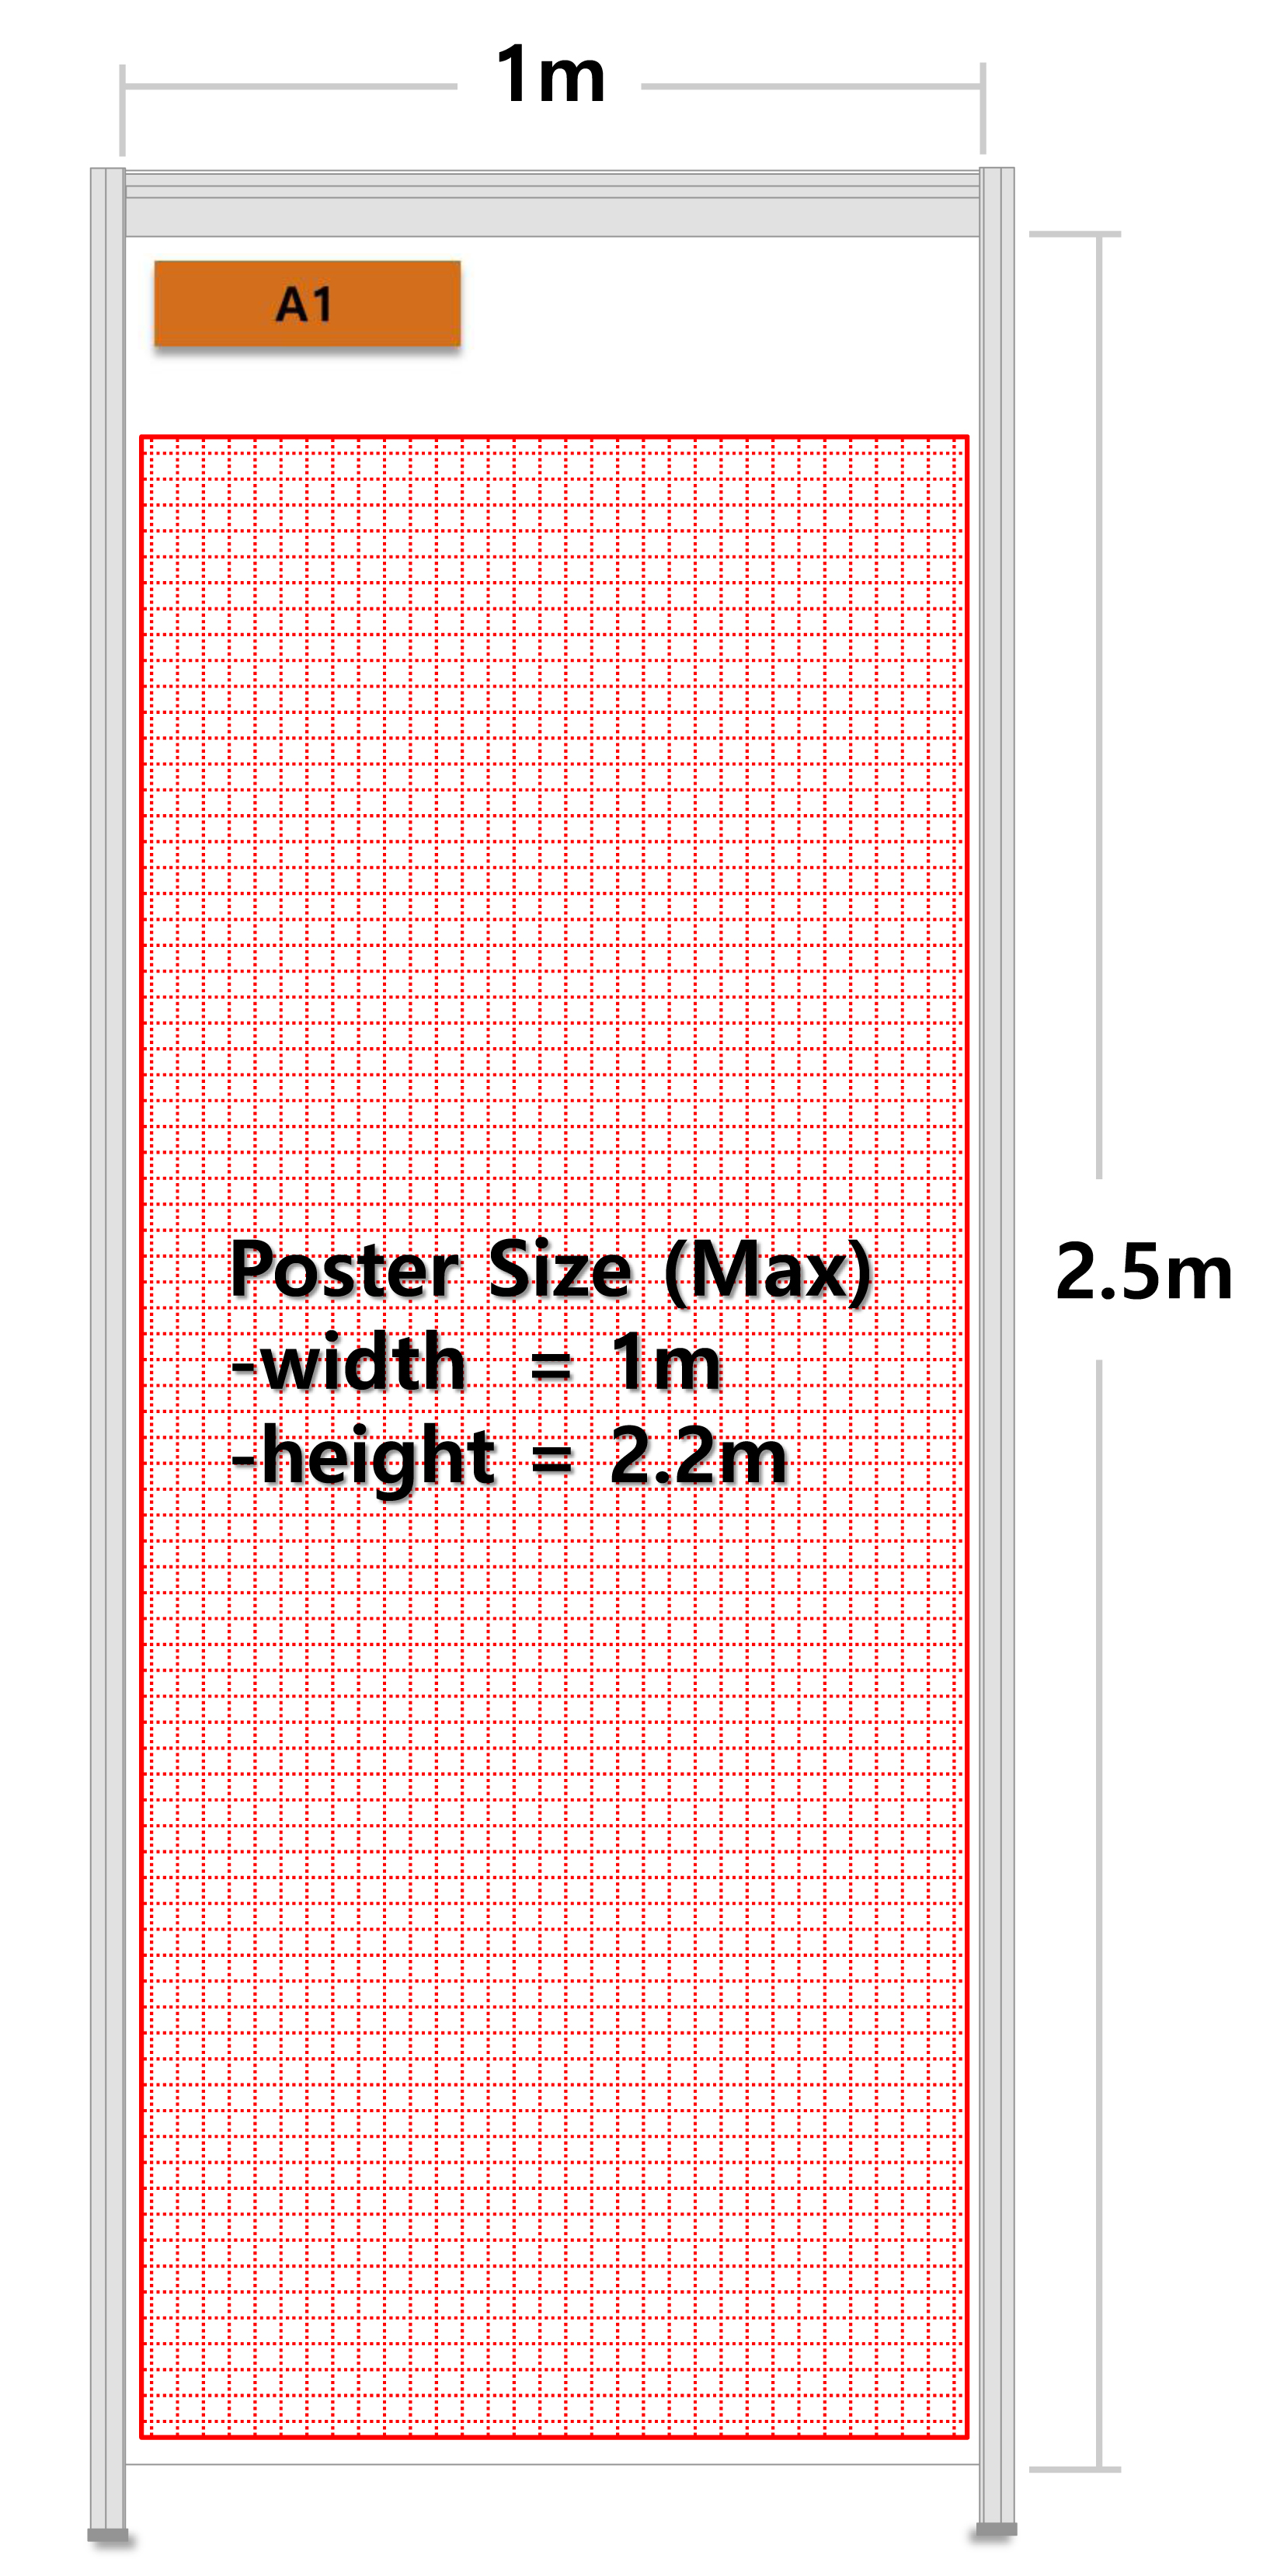 Guidelines for attaching a poster